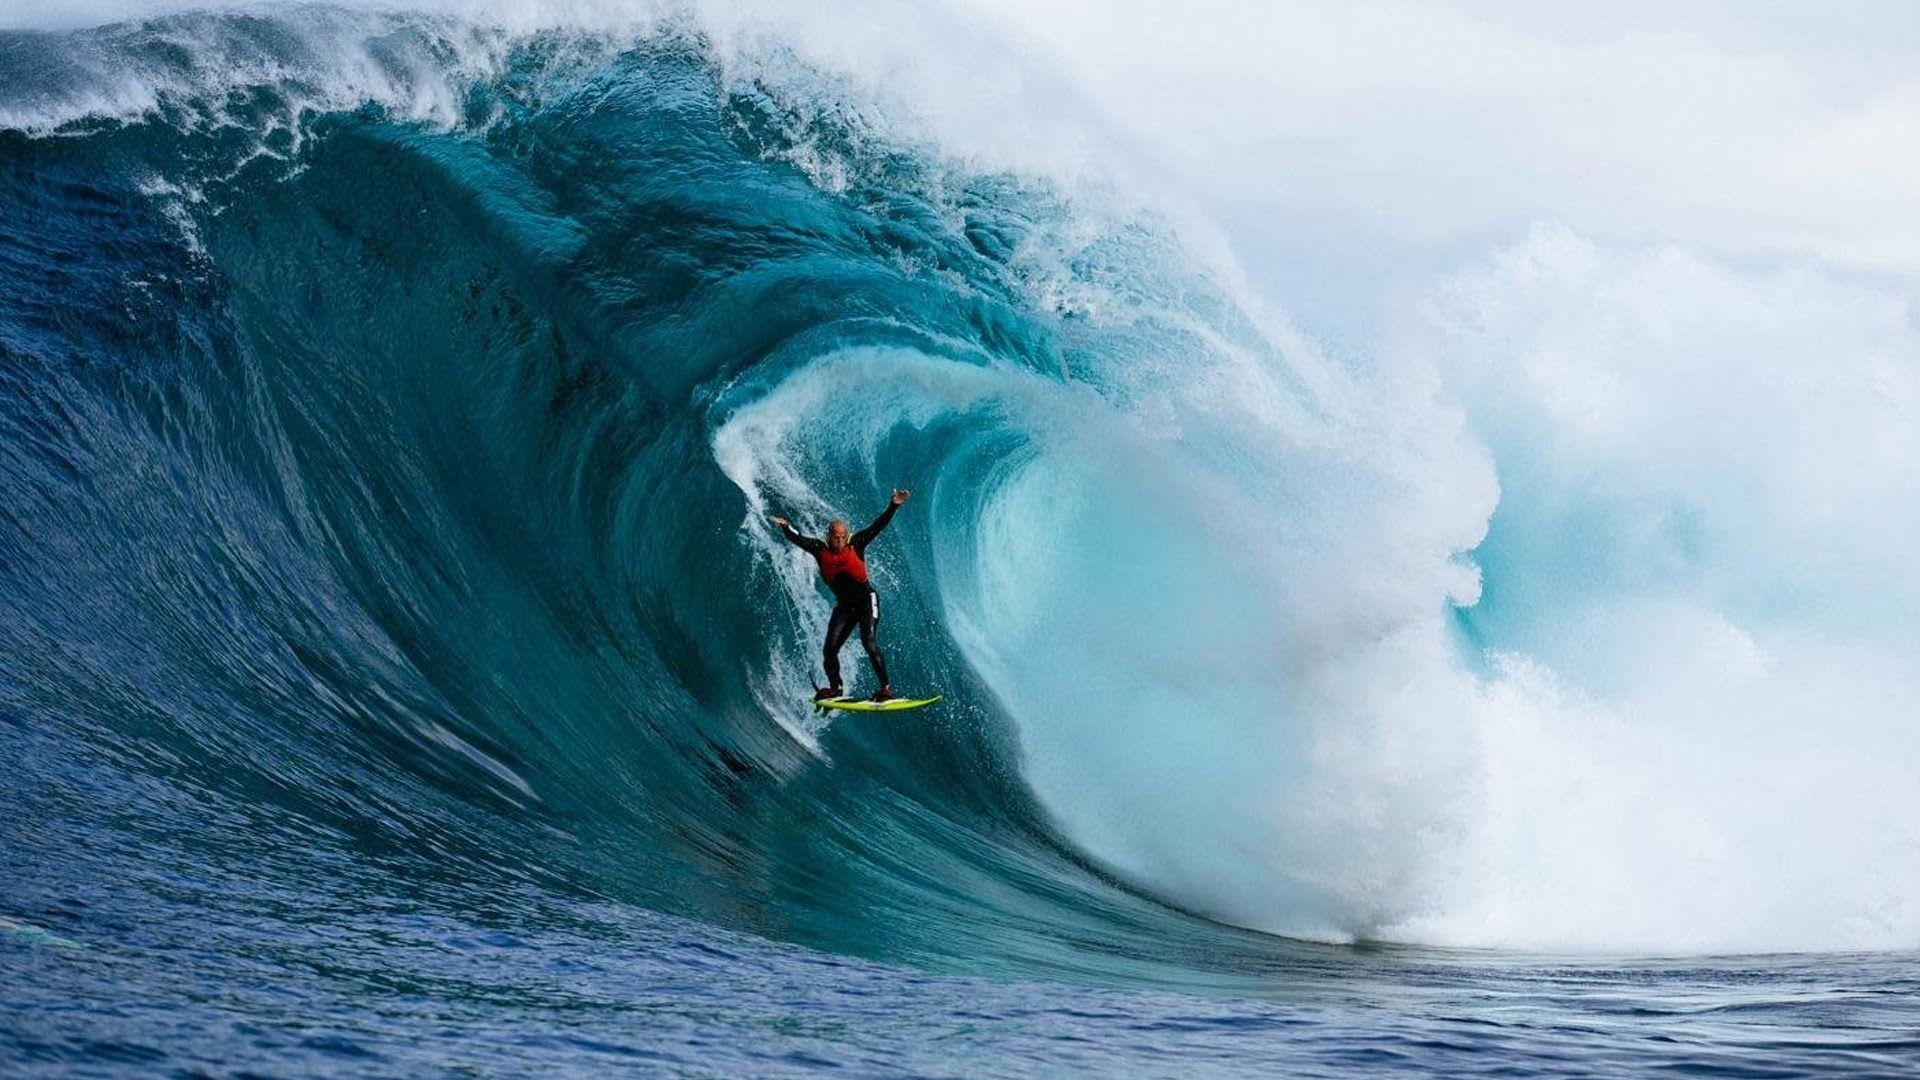 Air Drops at Shipstern Bluff Waves, Giant waves, Famous